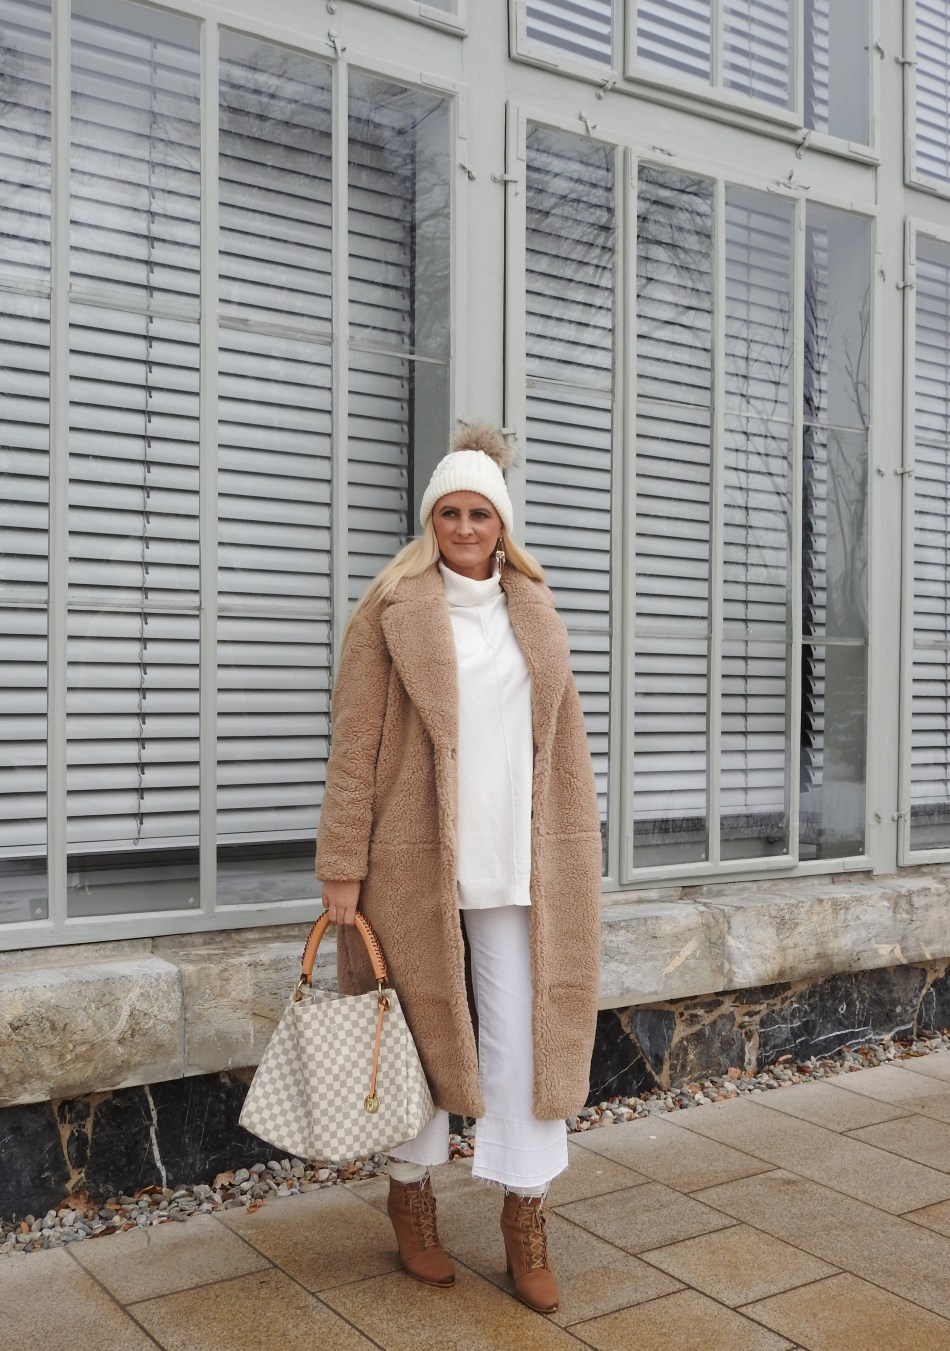 Snowqueen-Schneekönigin-Allinwhite-Teddycoat-Teddy-White-Culottes-carrieslifestyle-Tamara-Prutsch-Winterlook